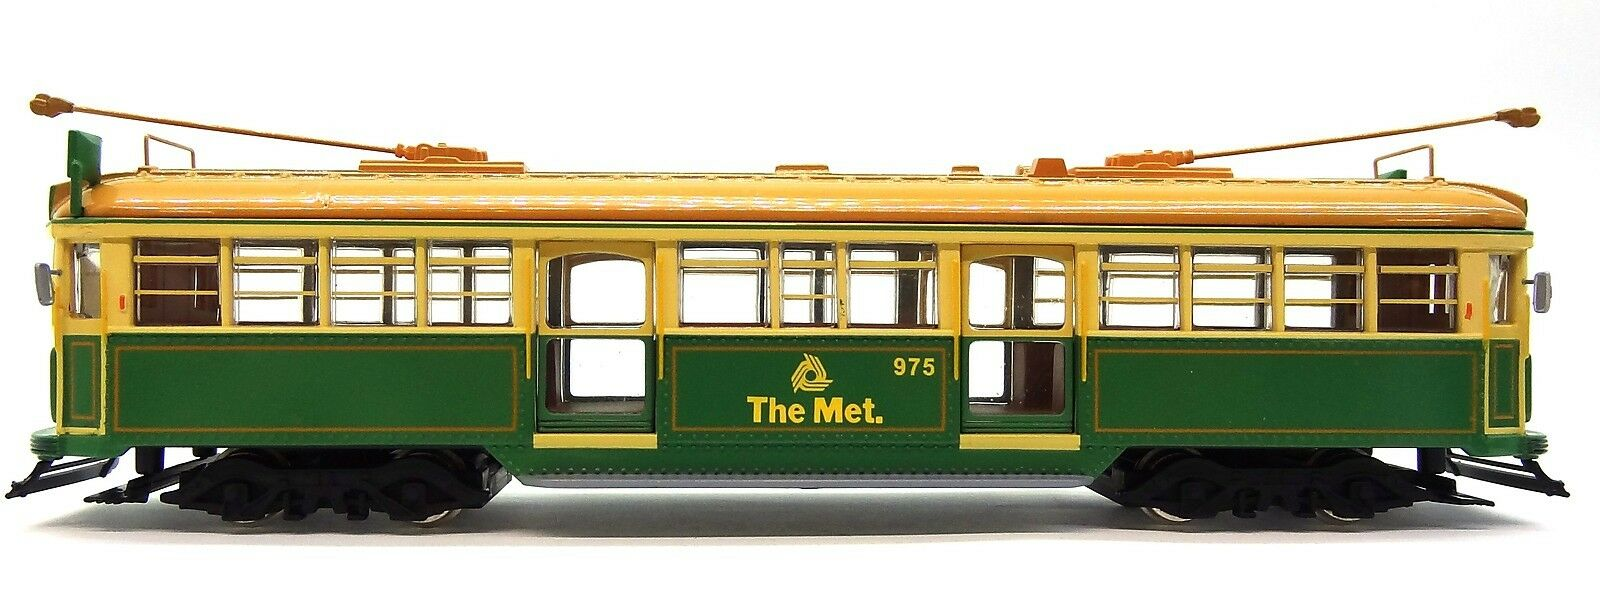 1 76 SCALE MELBOURNE W6 CLASS TRAM - THE MET Grün RATTLER NO. 975